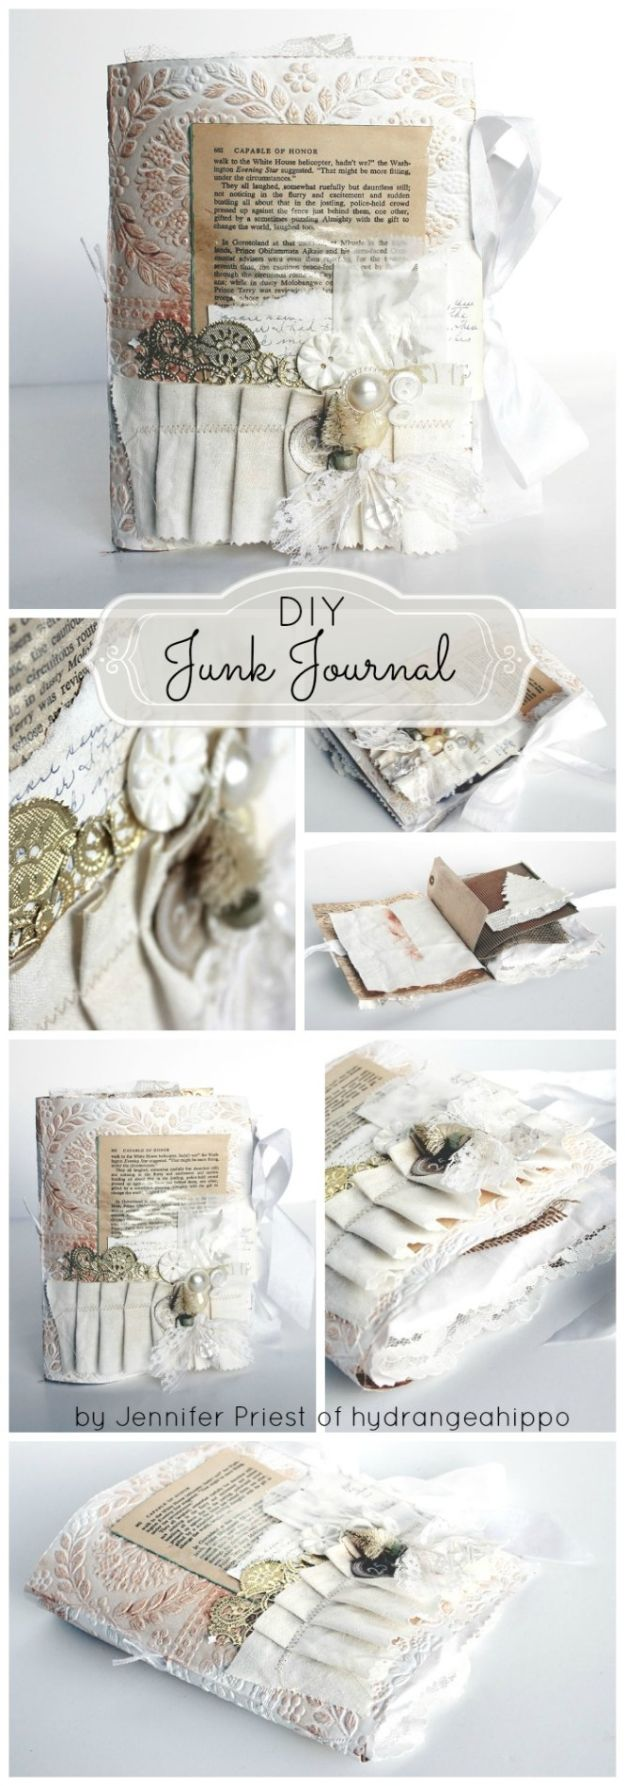 DIY Journals - DIY Junk Journal - Ideas For Making A Handmade Journal - Cover Art Tutorial, Binding Tips, Easy Craft Ideas for Kids and For Teens - Step By Step Instructions for Making From Scratch, From An Old Book - Leather, Faux Marble, Paper, Monogram, Cute Do It Yourself Gift Idea http://diyjoy.com/diy-journals